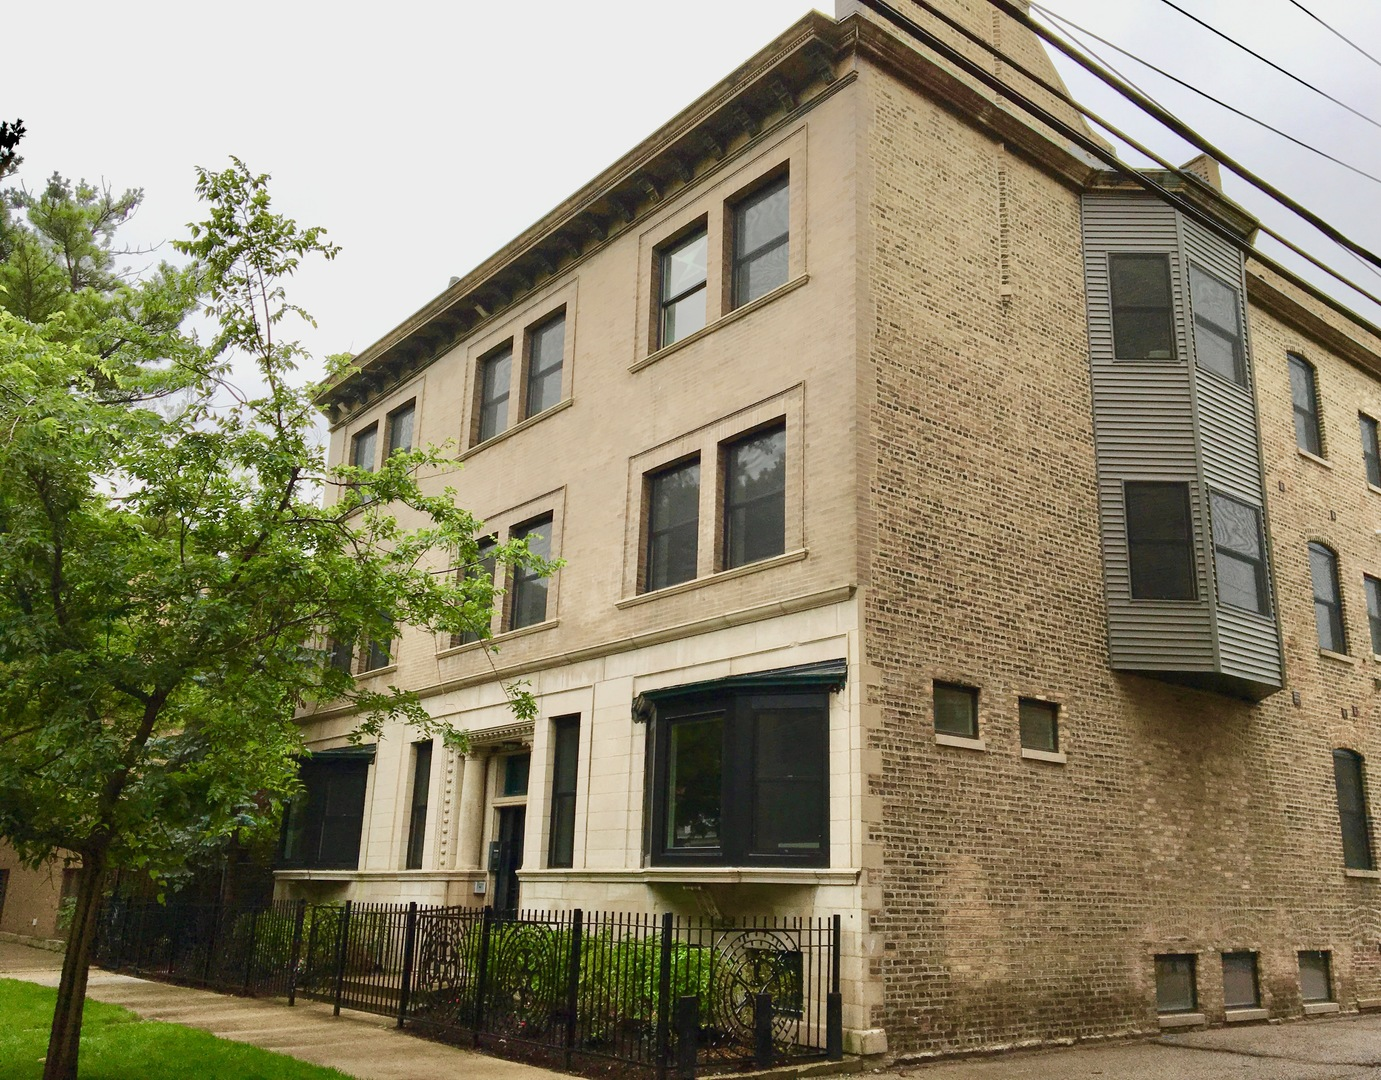 2 Apartment in Uptown